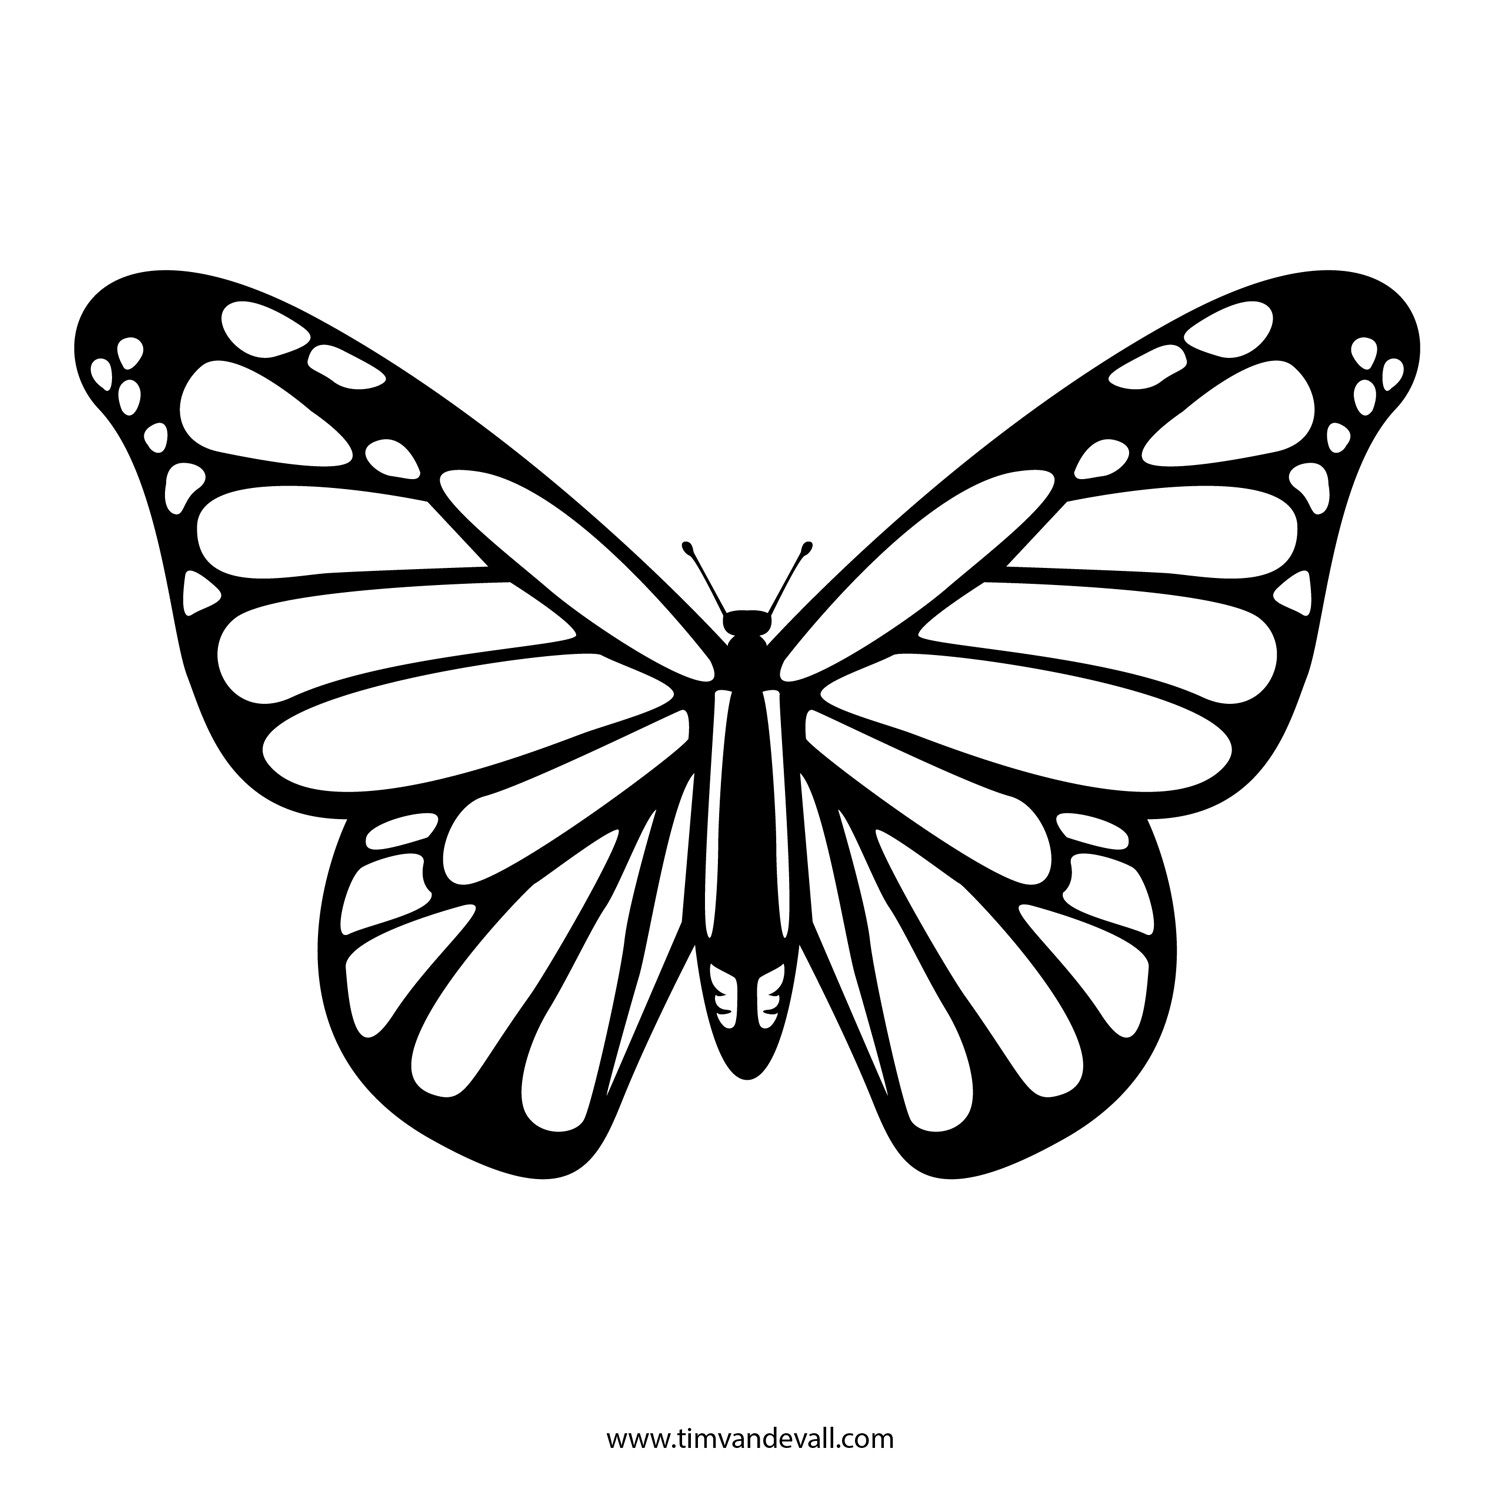 Free Printable Stencils In Lots Of Different Categories. Lots Of - Free Printable Butterfly Cutouts